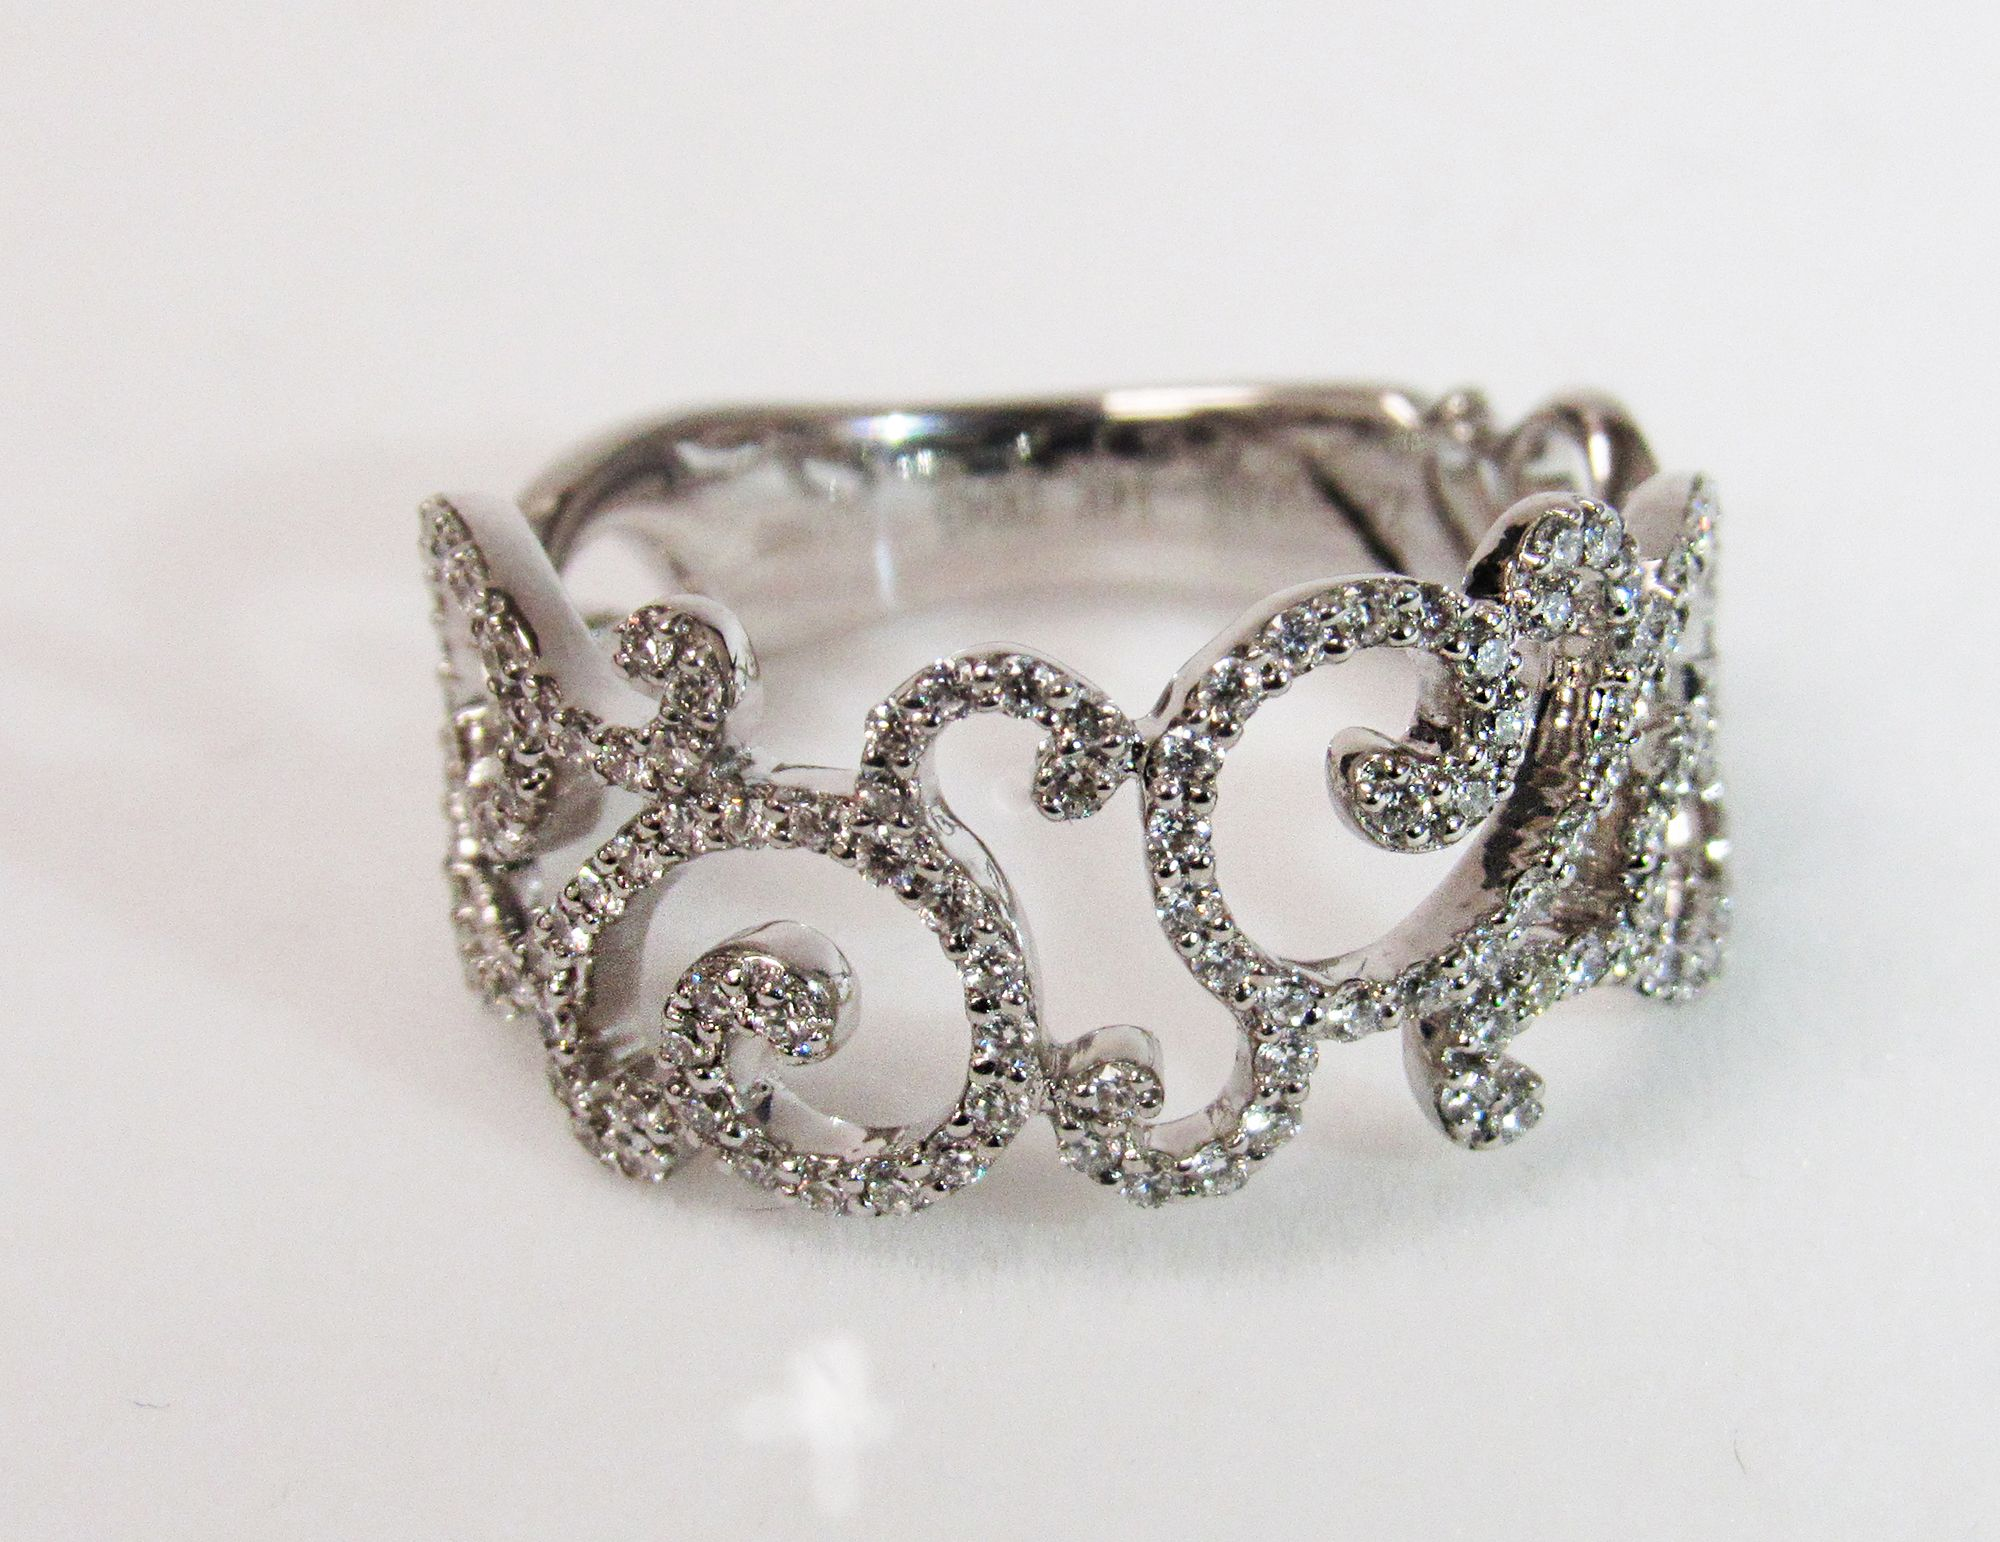 Zeghani diamond weave rings, multiple styles but never changing beauty - Available at Hunt Valley Jewelers